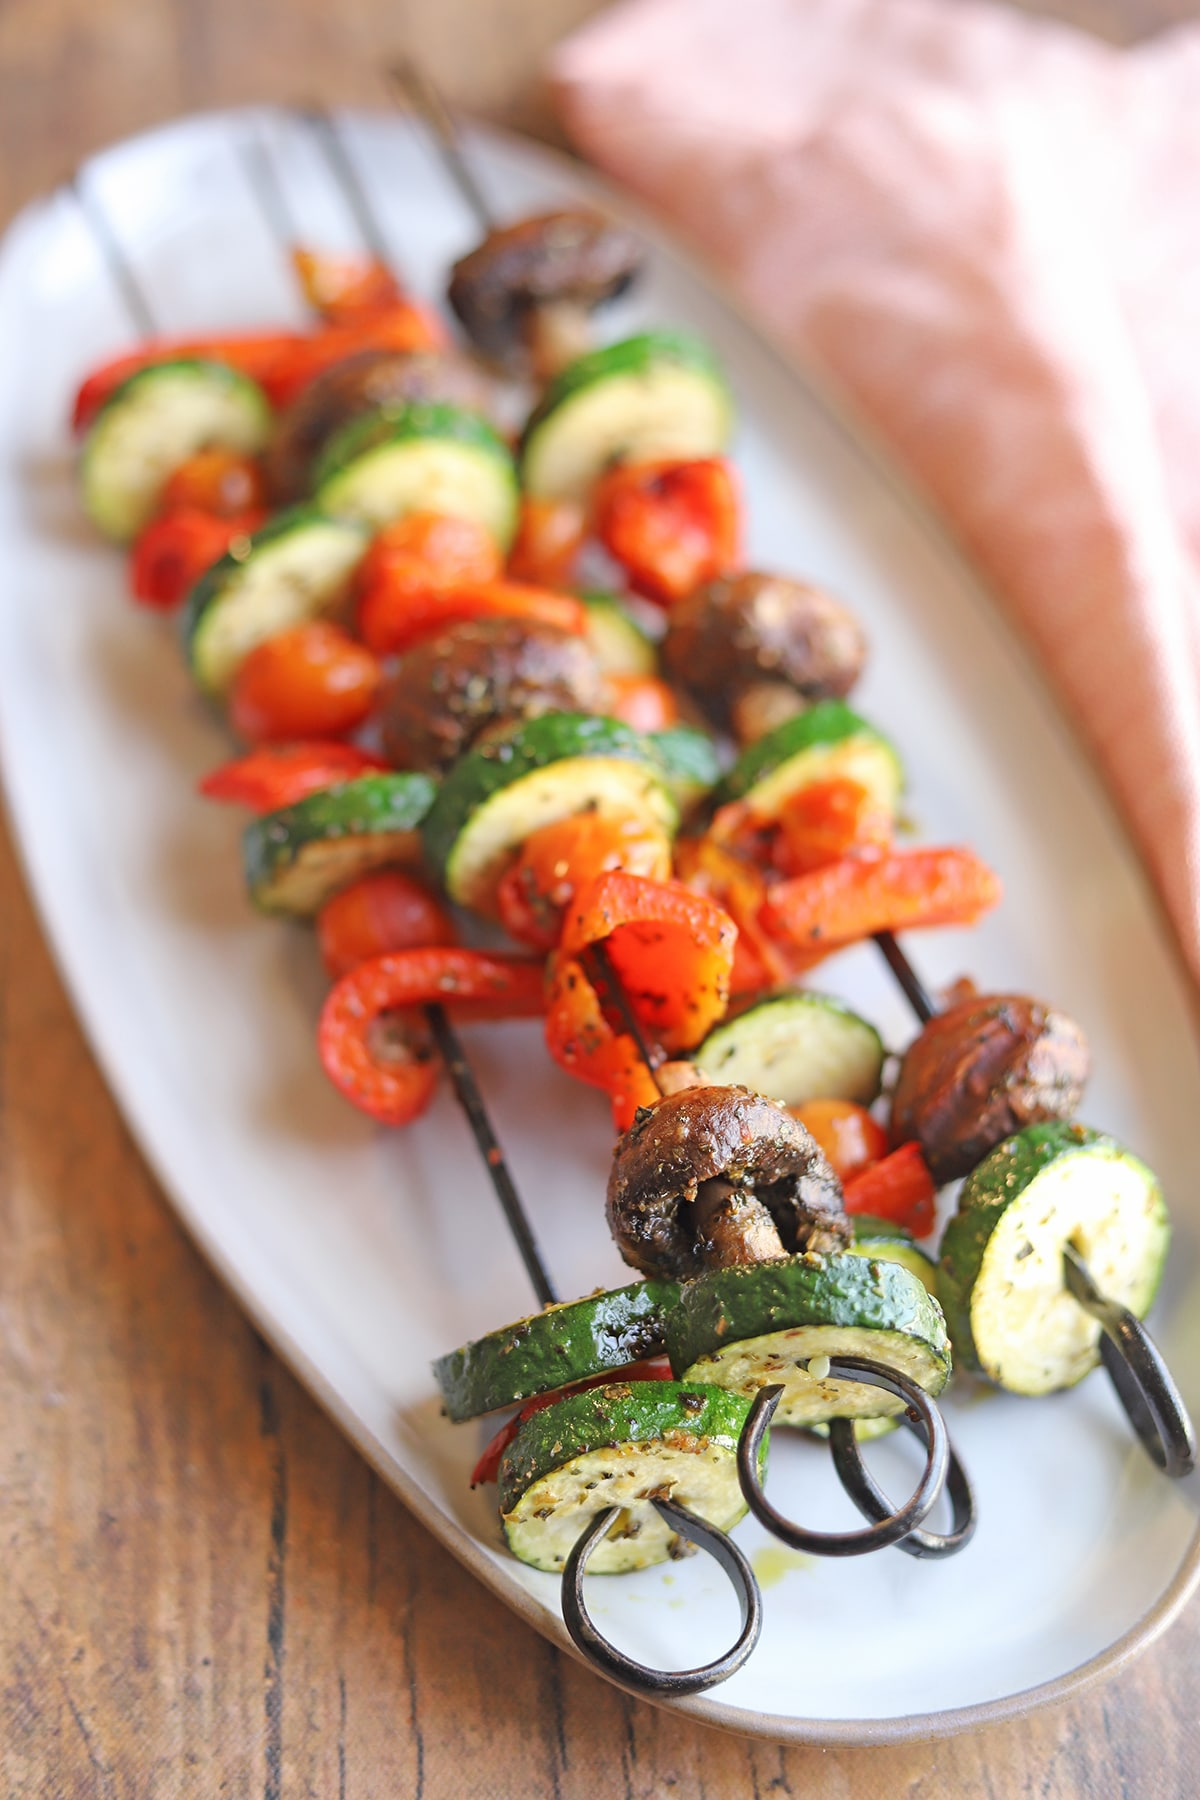 Zucchini, bell peppers, mushrooms, and tomatoes grilled on skewers.